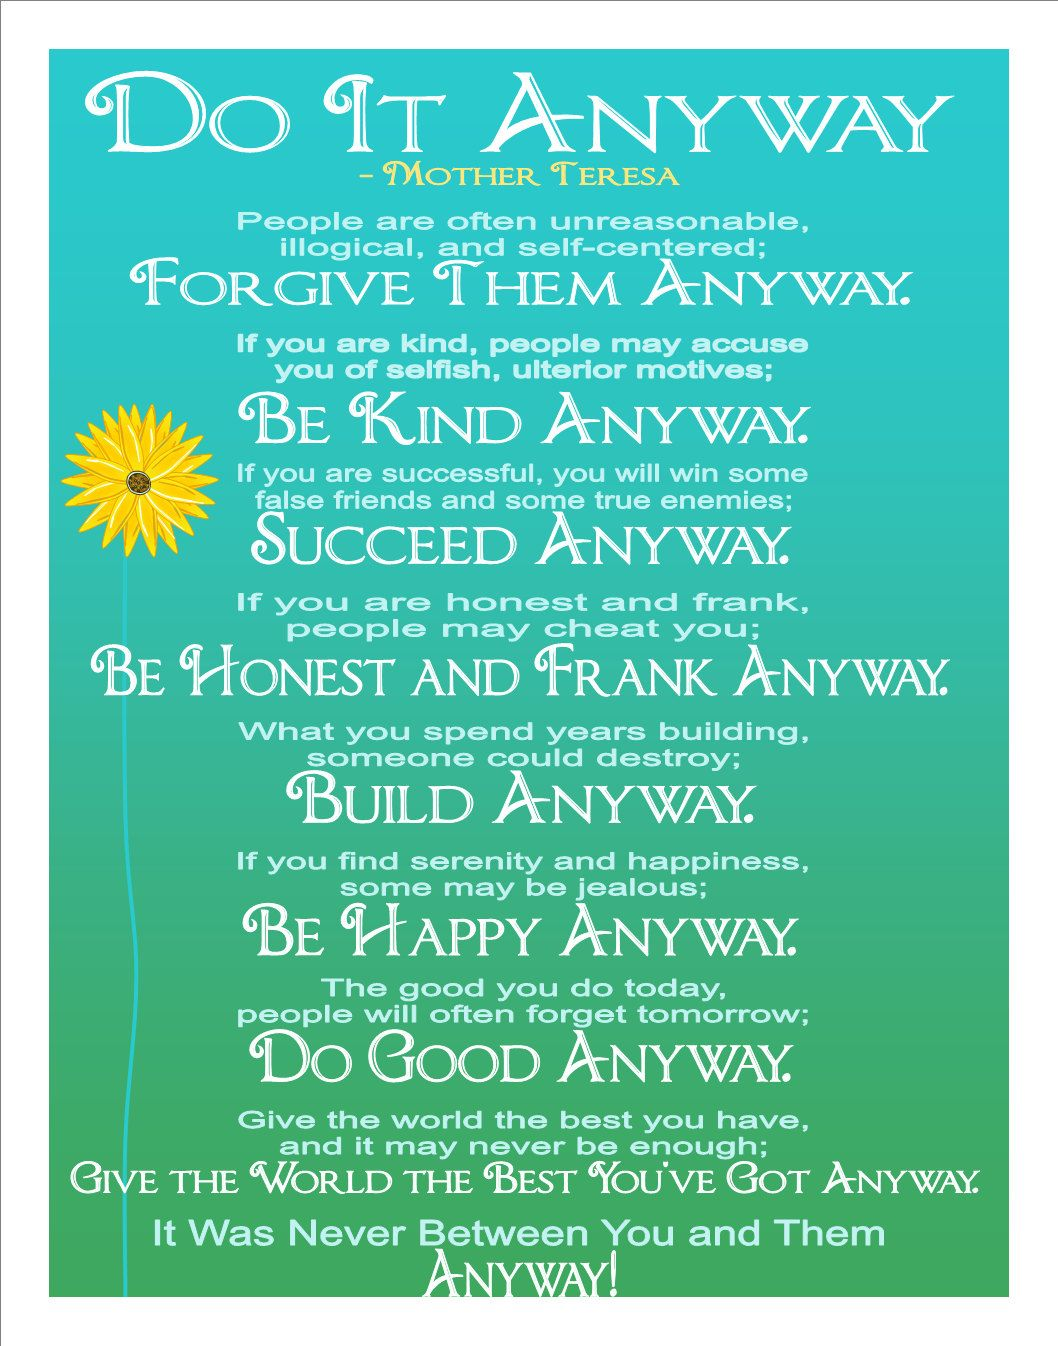 photo about Mother Teresa Do It Anyway Printable referred to as Do It In any case - Inspirational prints estimate through Mom Teresa